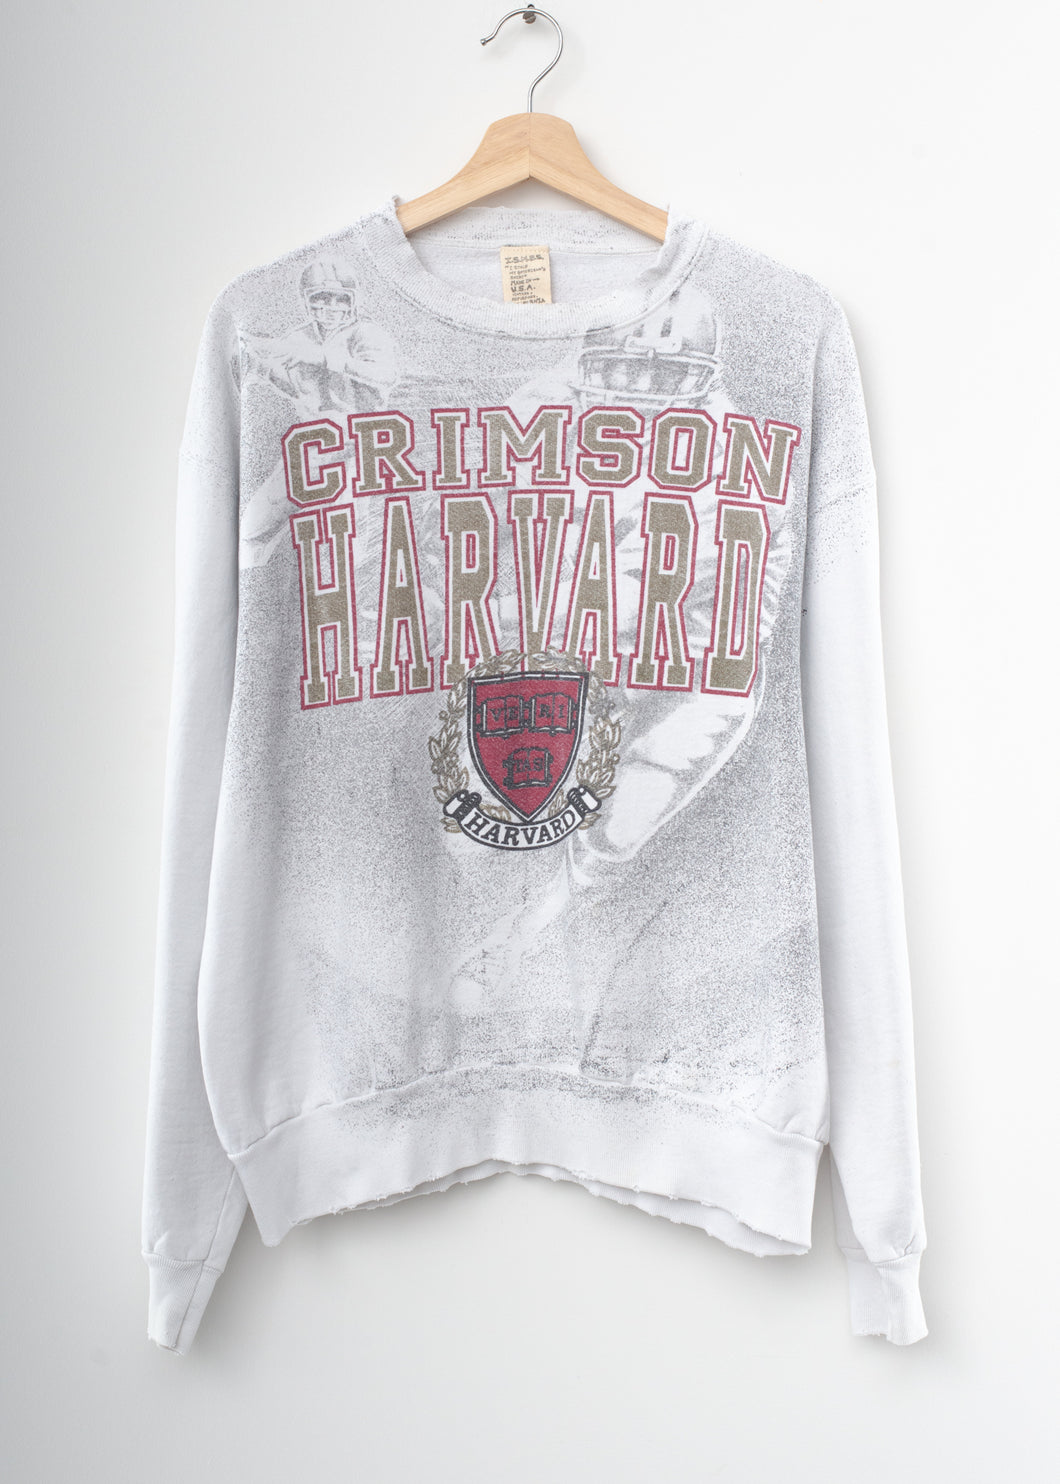 Crimson Harvard Sweatshirt